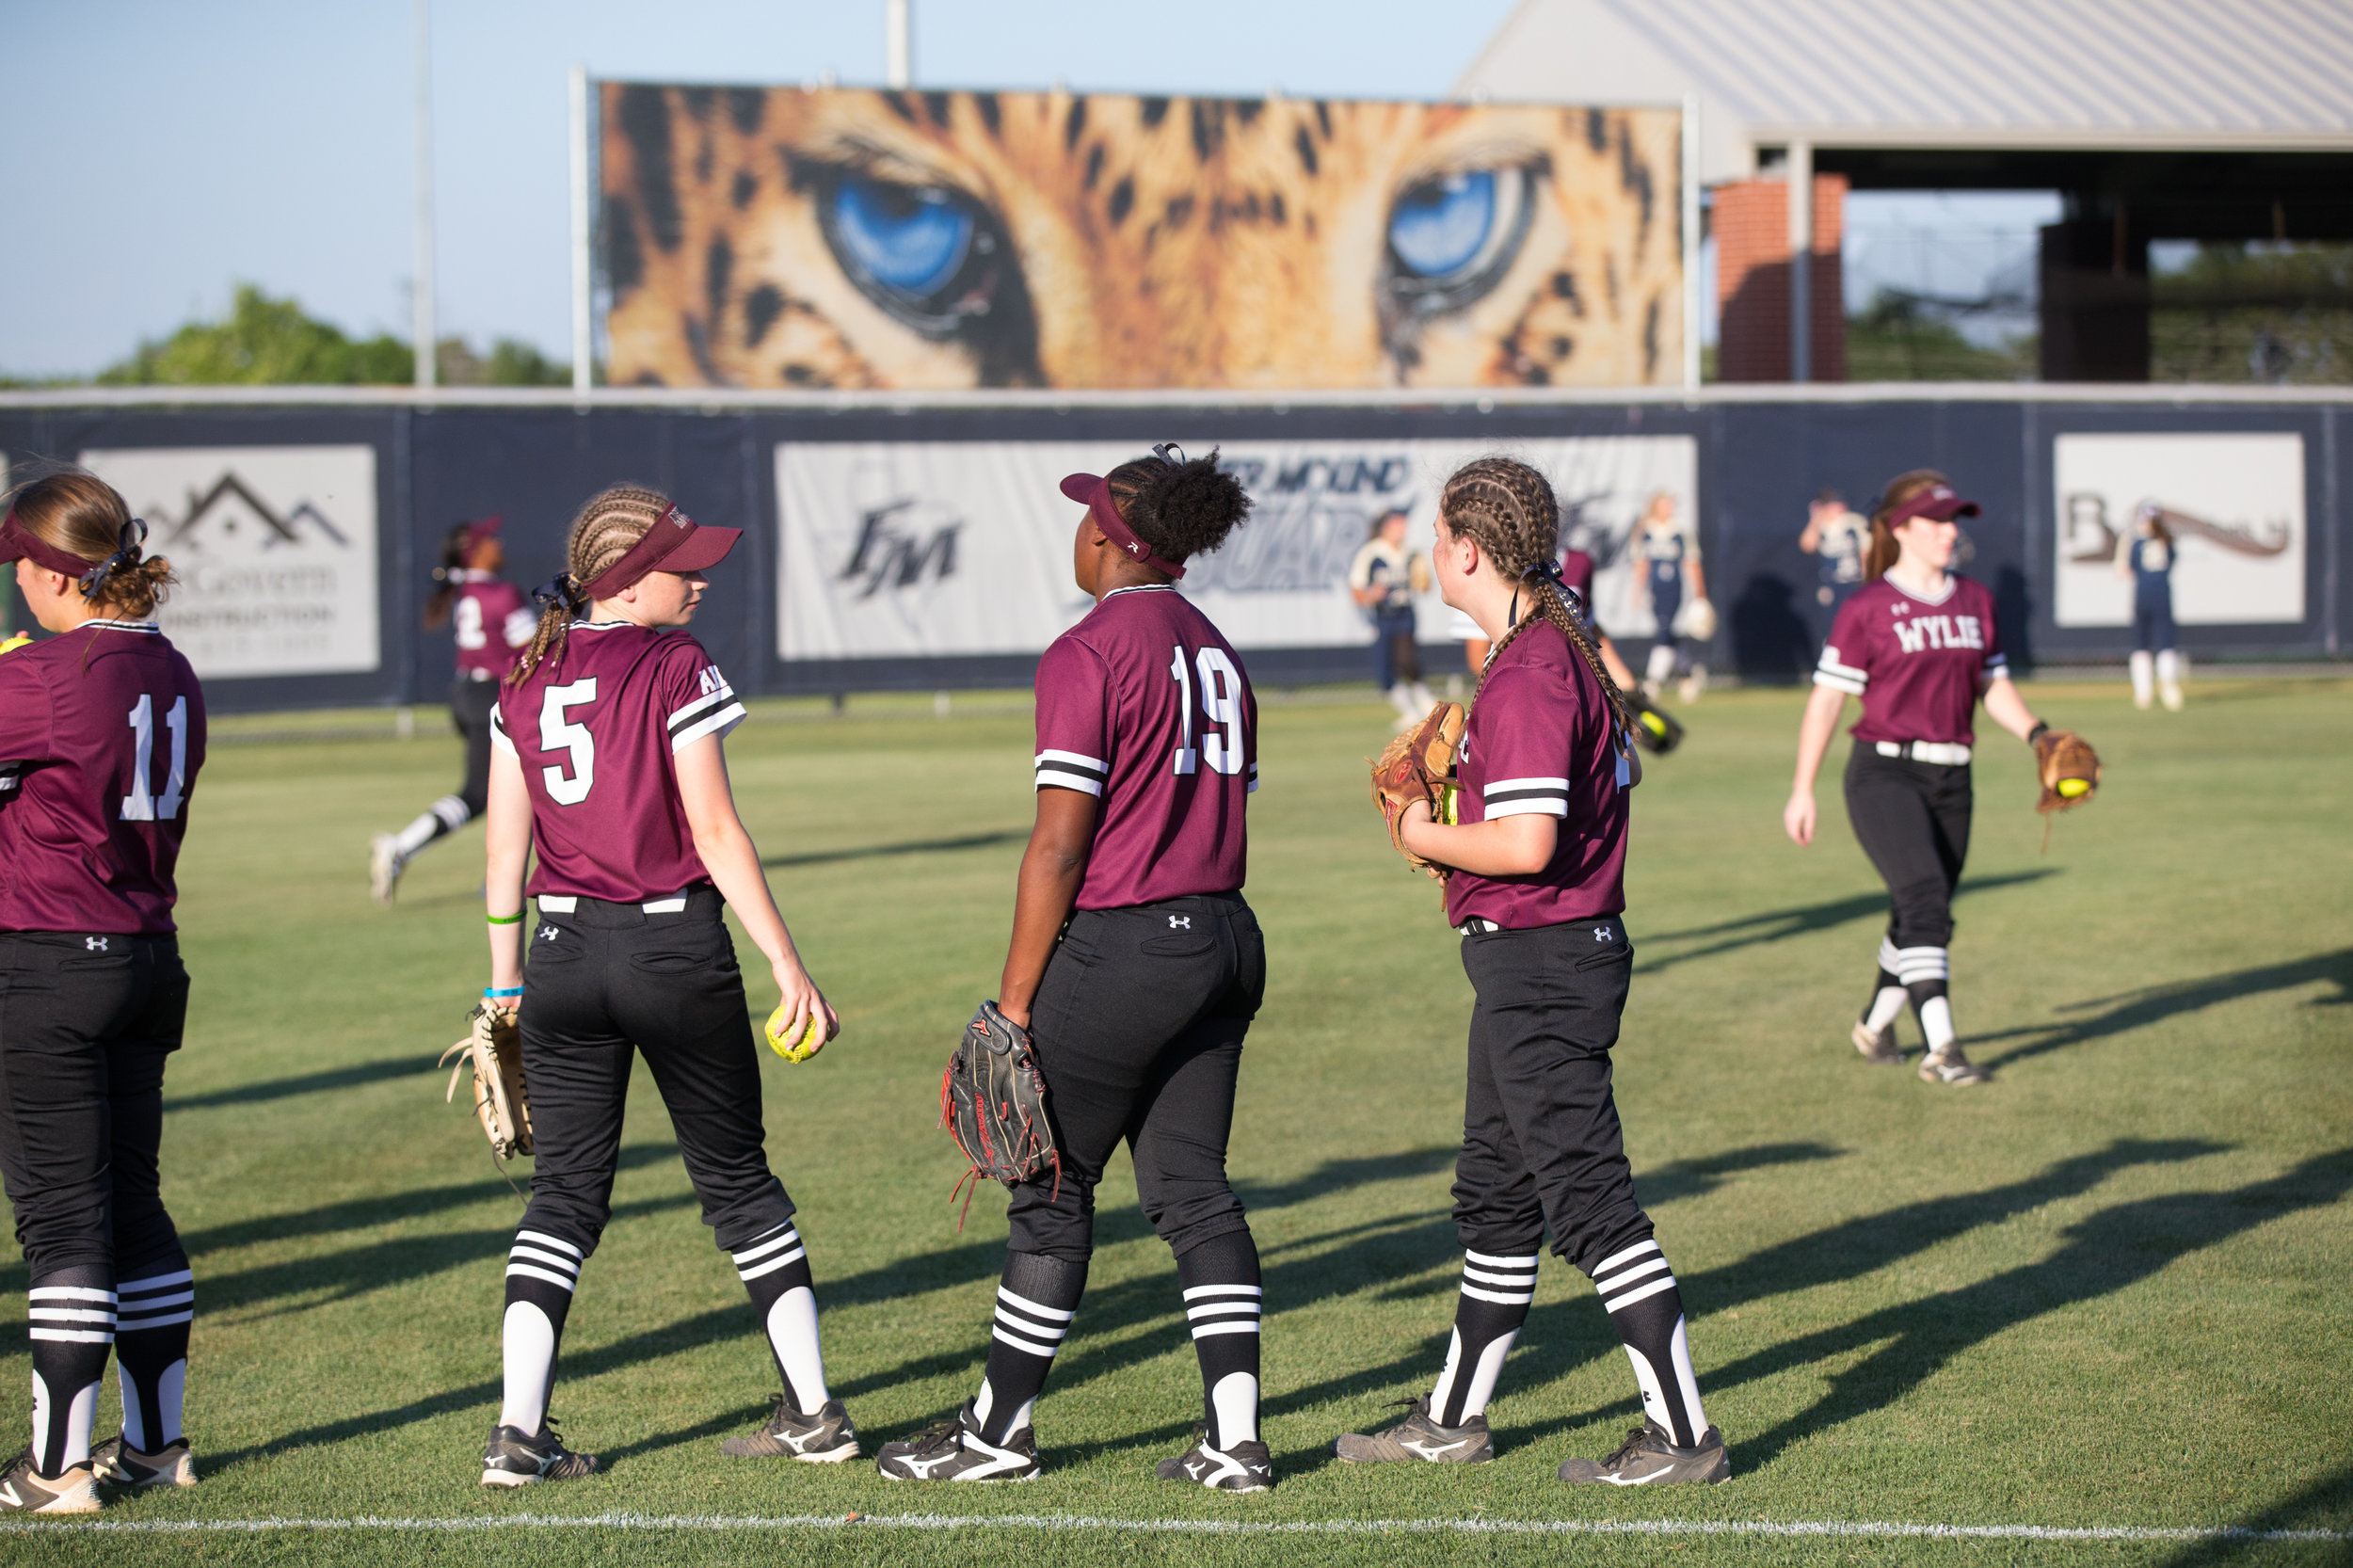 5_18 Wylie Softball-107.jpg